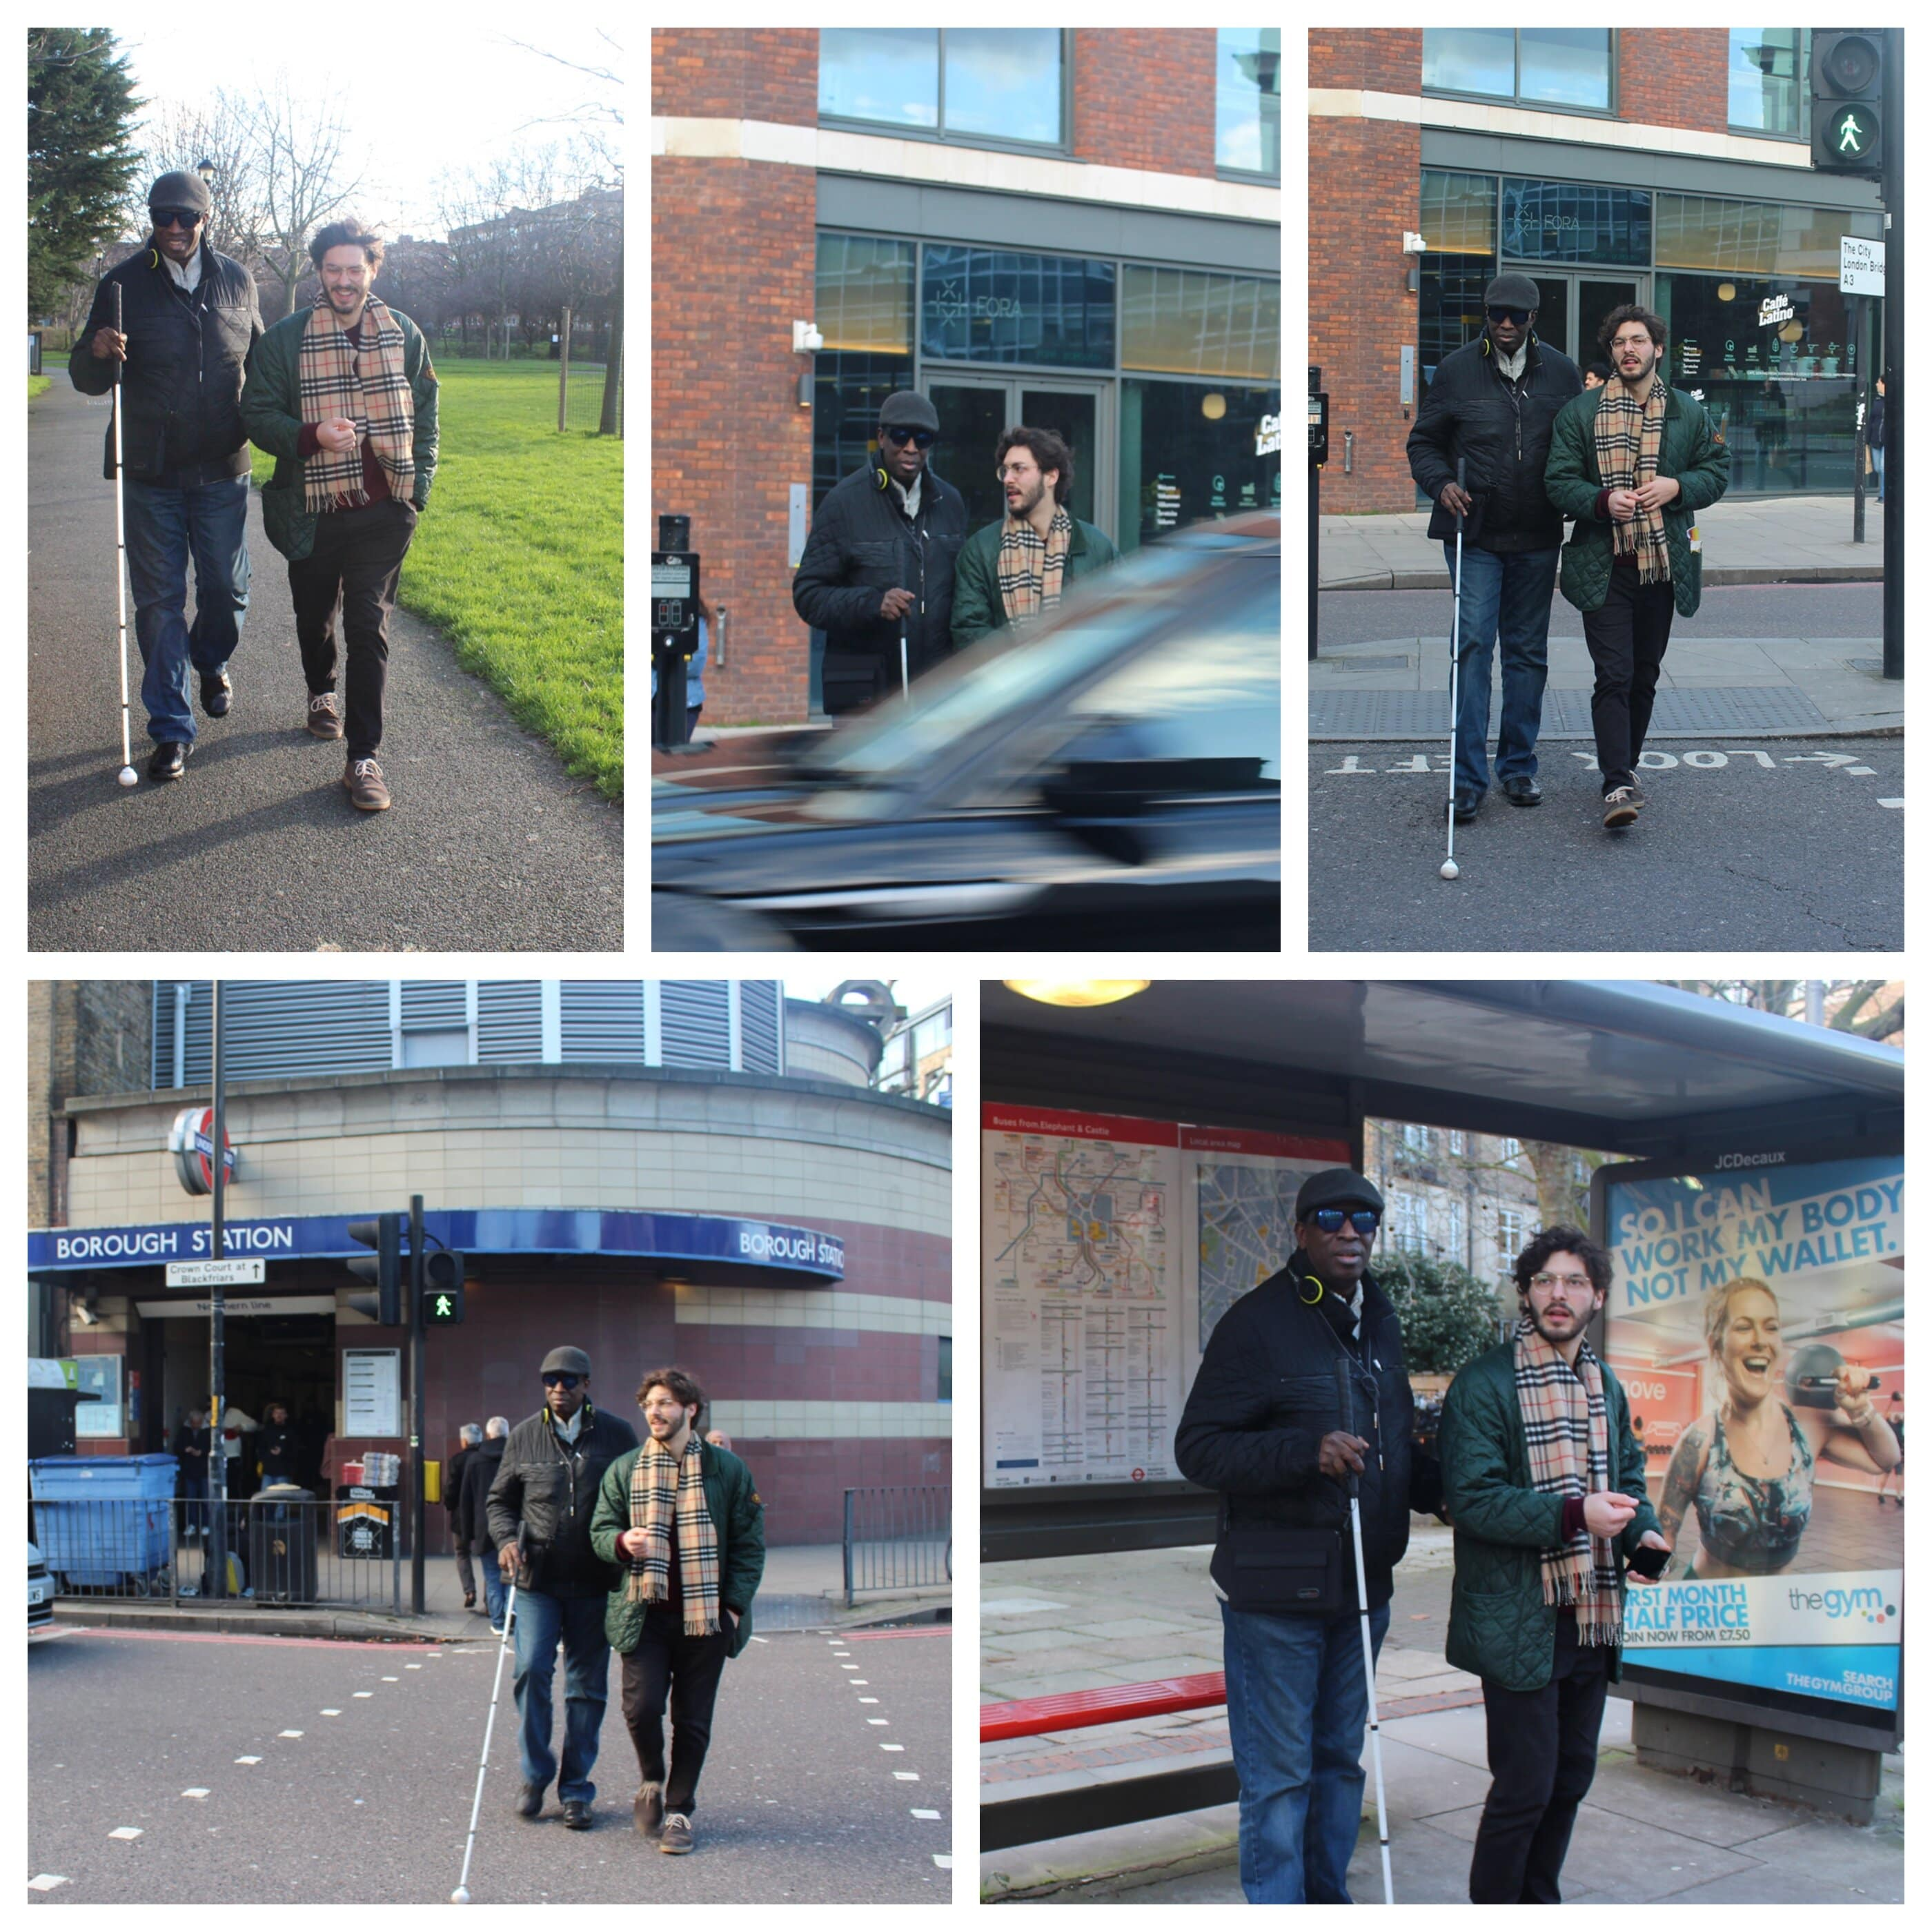 Collage from travel points of a visually impaired person and a volunteer